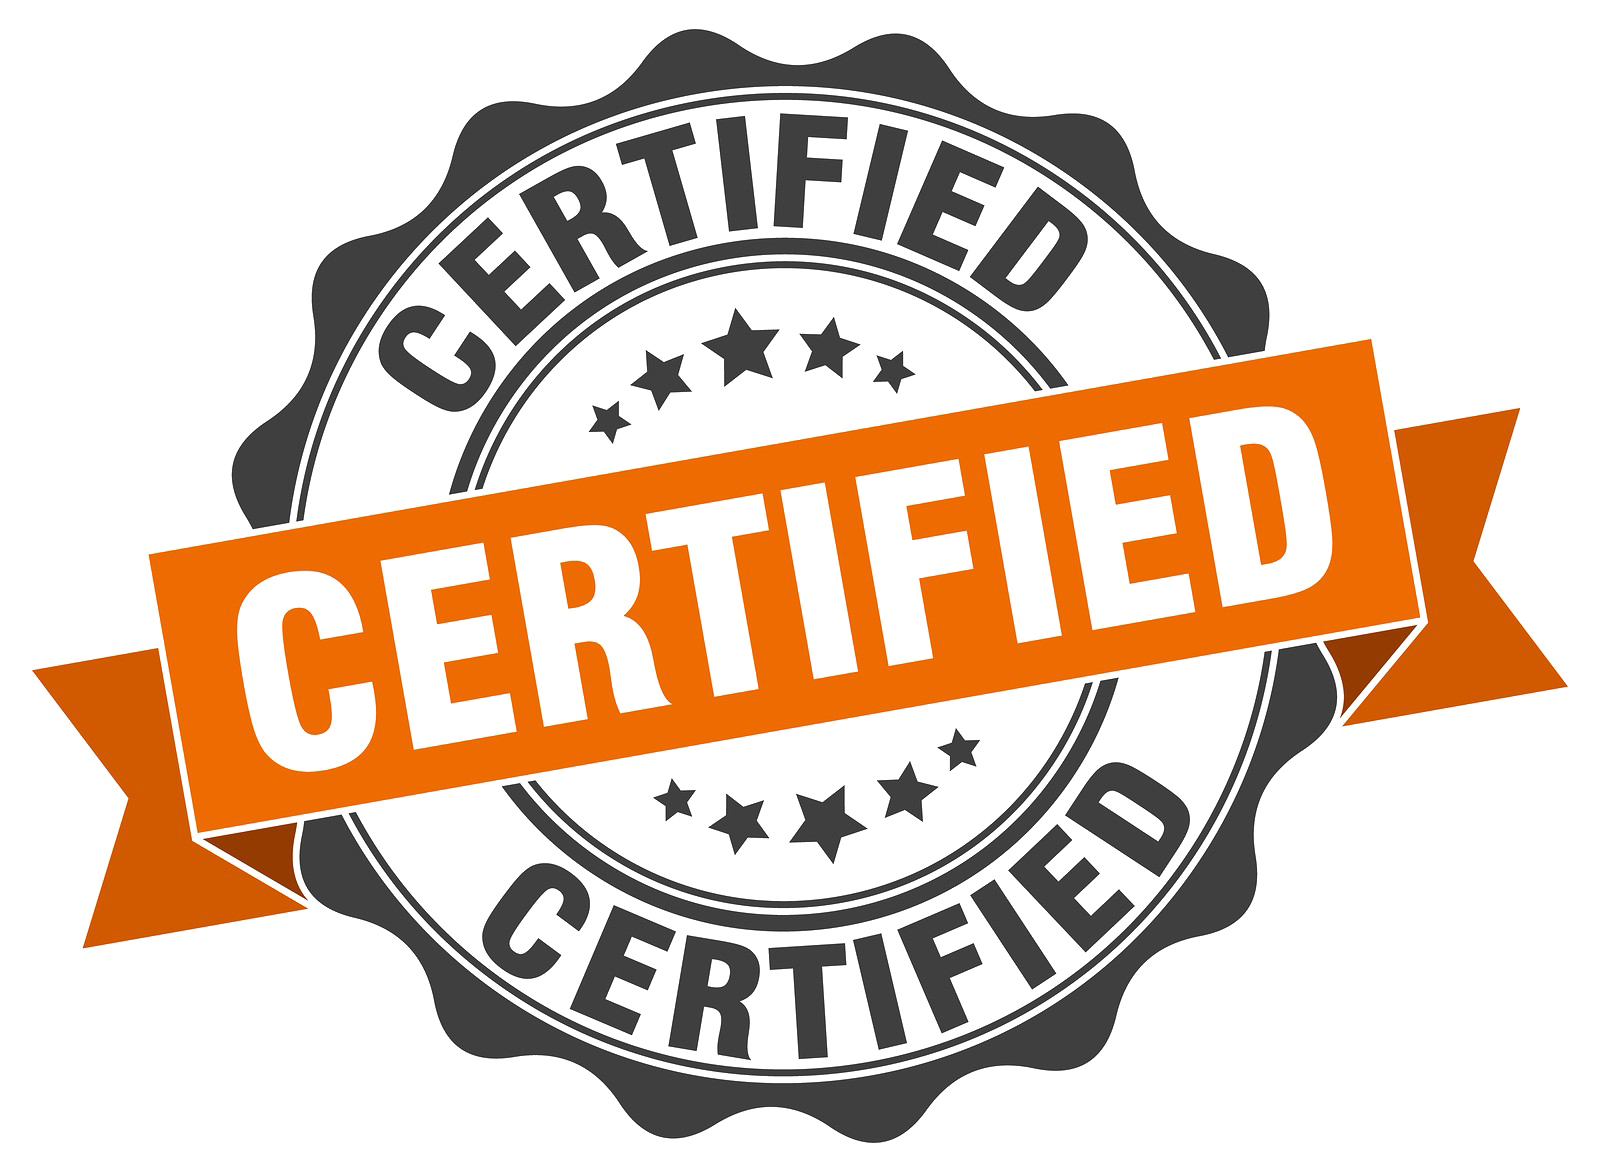 certified-png-clipart-certified-png-1600_1172